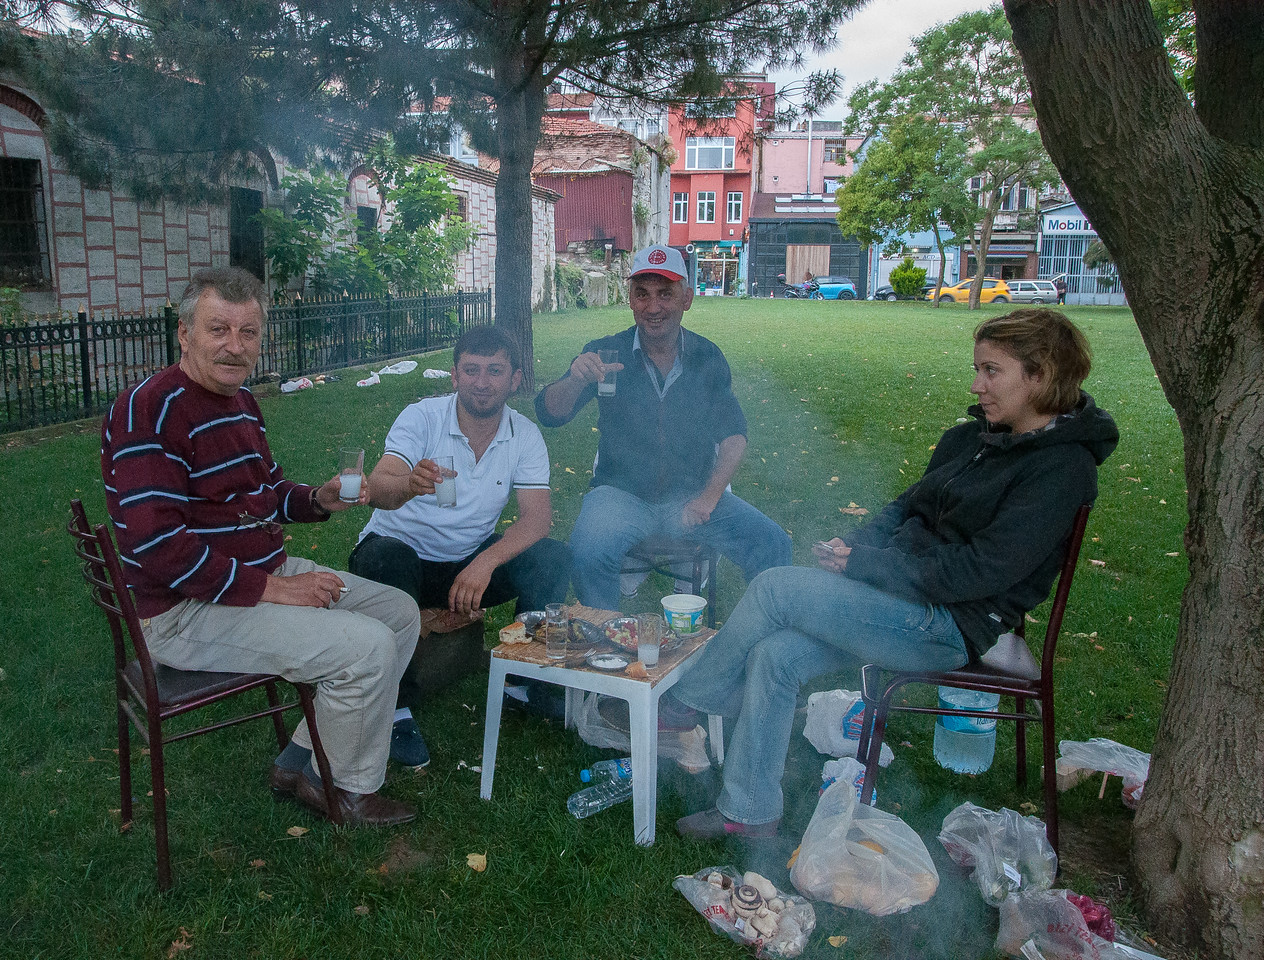 Some Picnickers I met enjoying some Raki